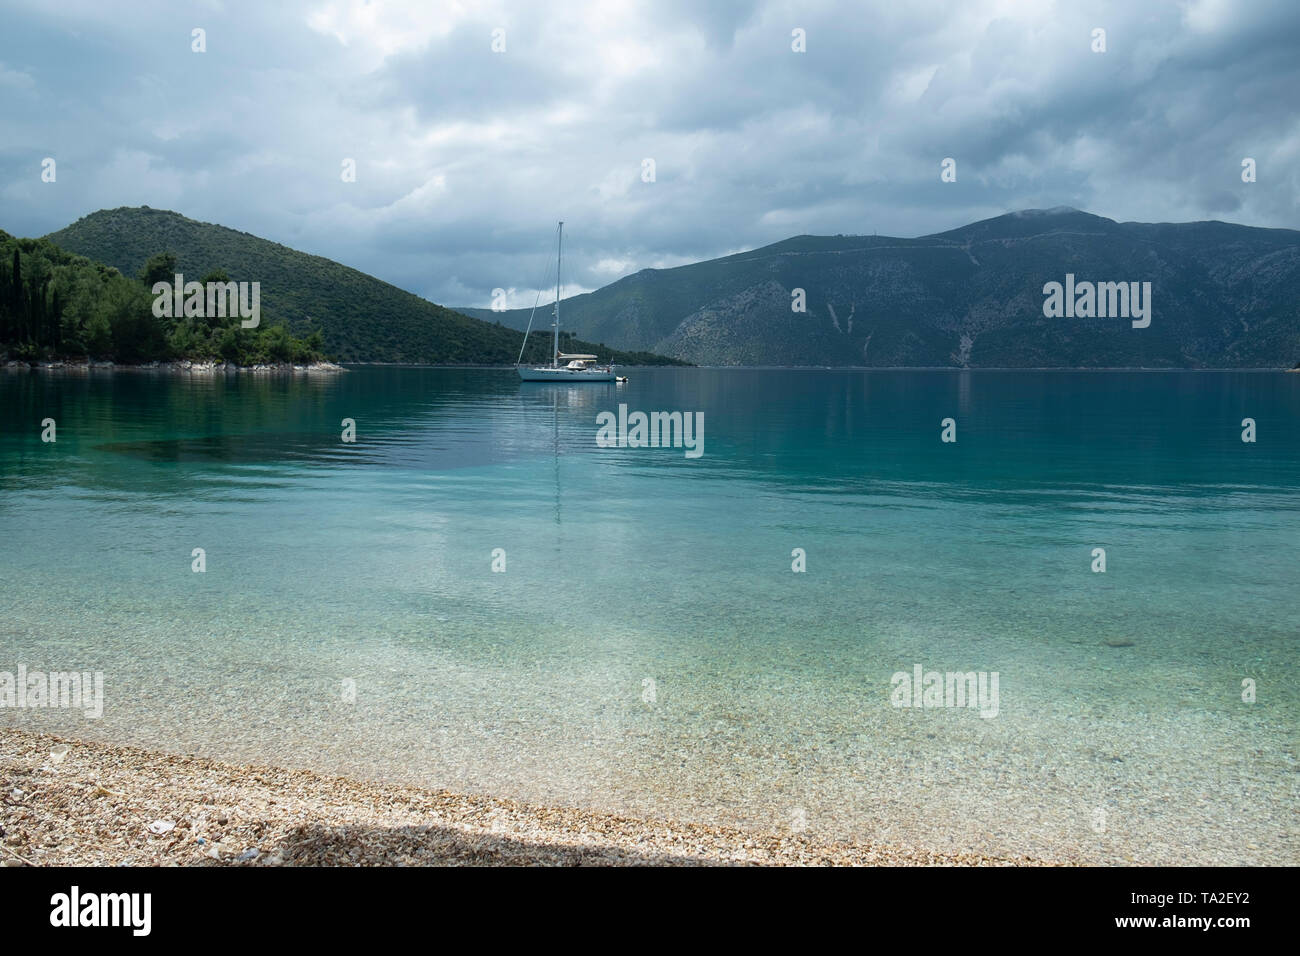 Views at Skinos beach near Vathy, Ithaca, Greece. Ithaca, Ithaki or Ithaka is a Greek island located in the Ionian Sea to the west of continental Greece. Ithacas main island has an area of 96 square kilometres. It is the second-smallest of seven main Ionian Islands. - Stock Image